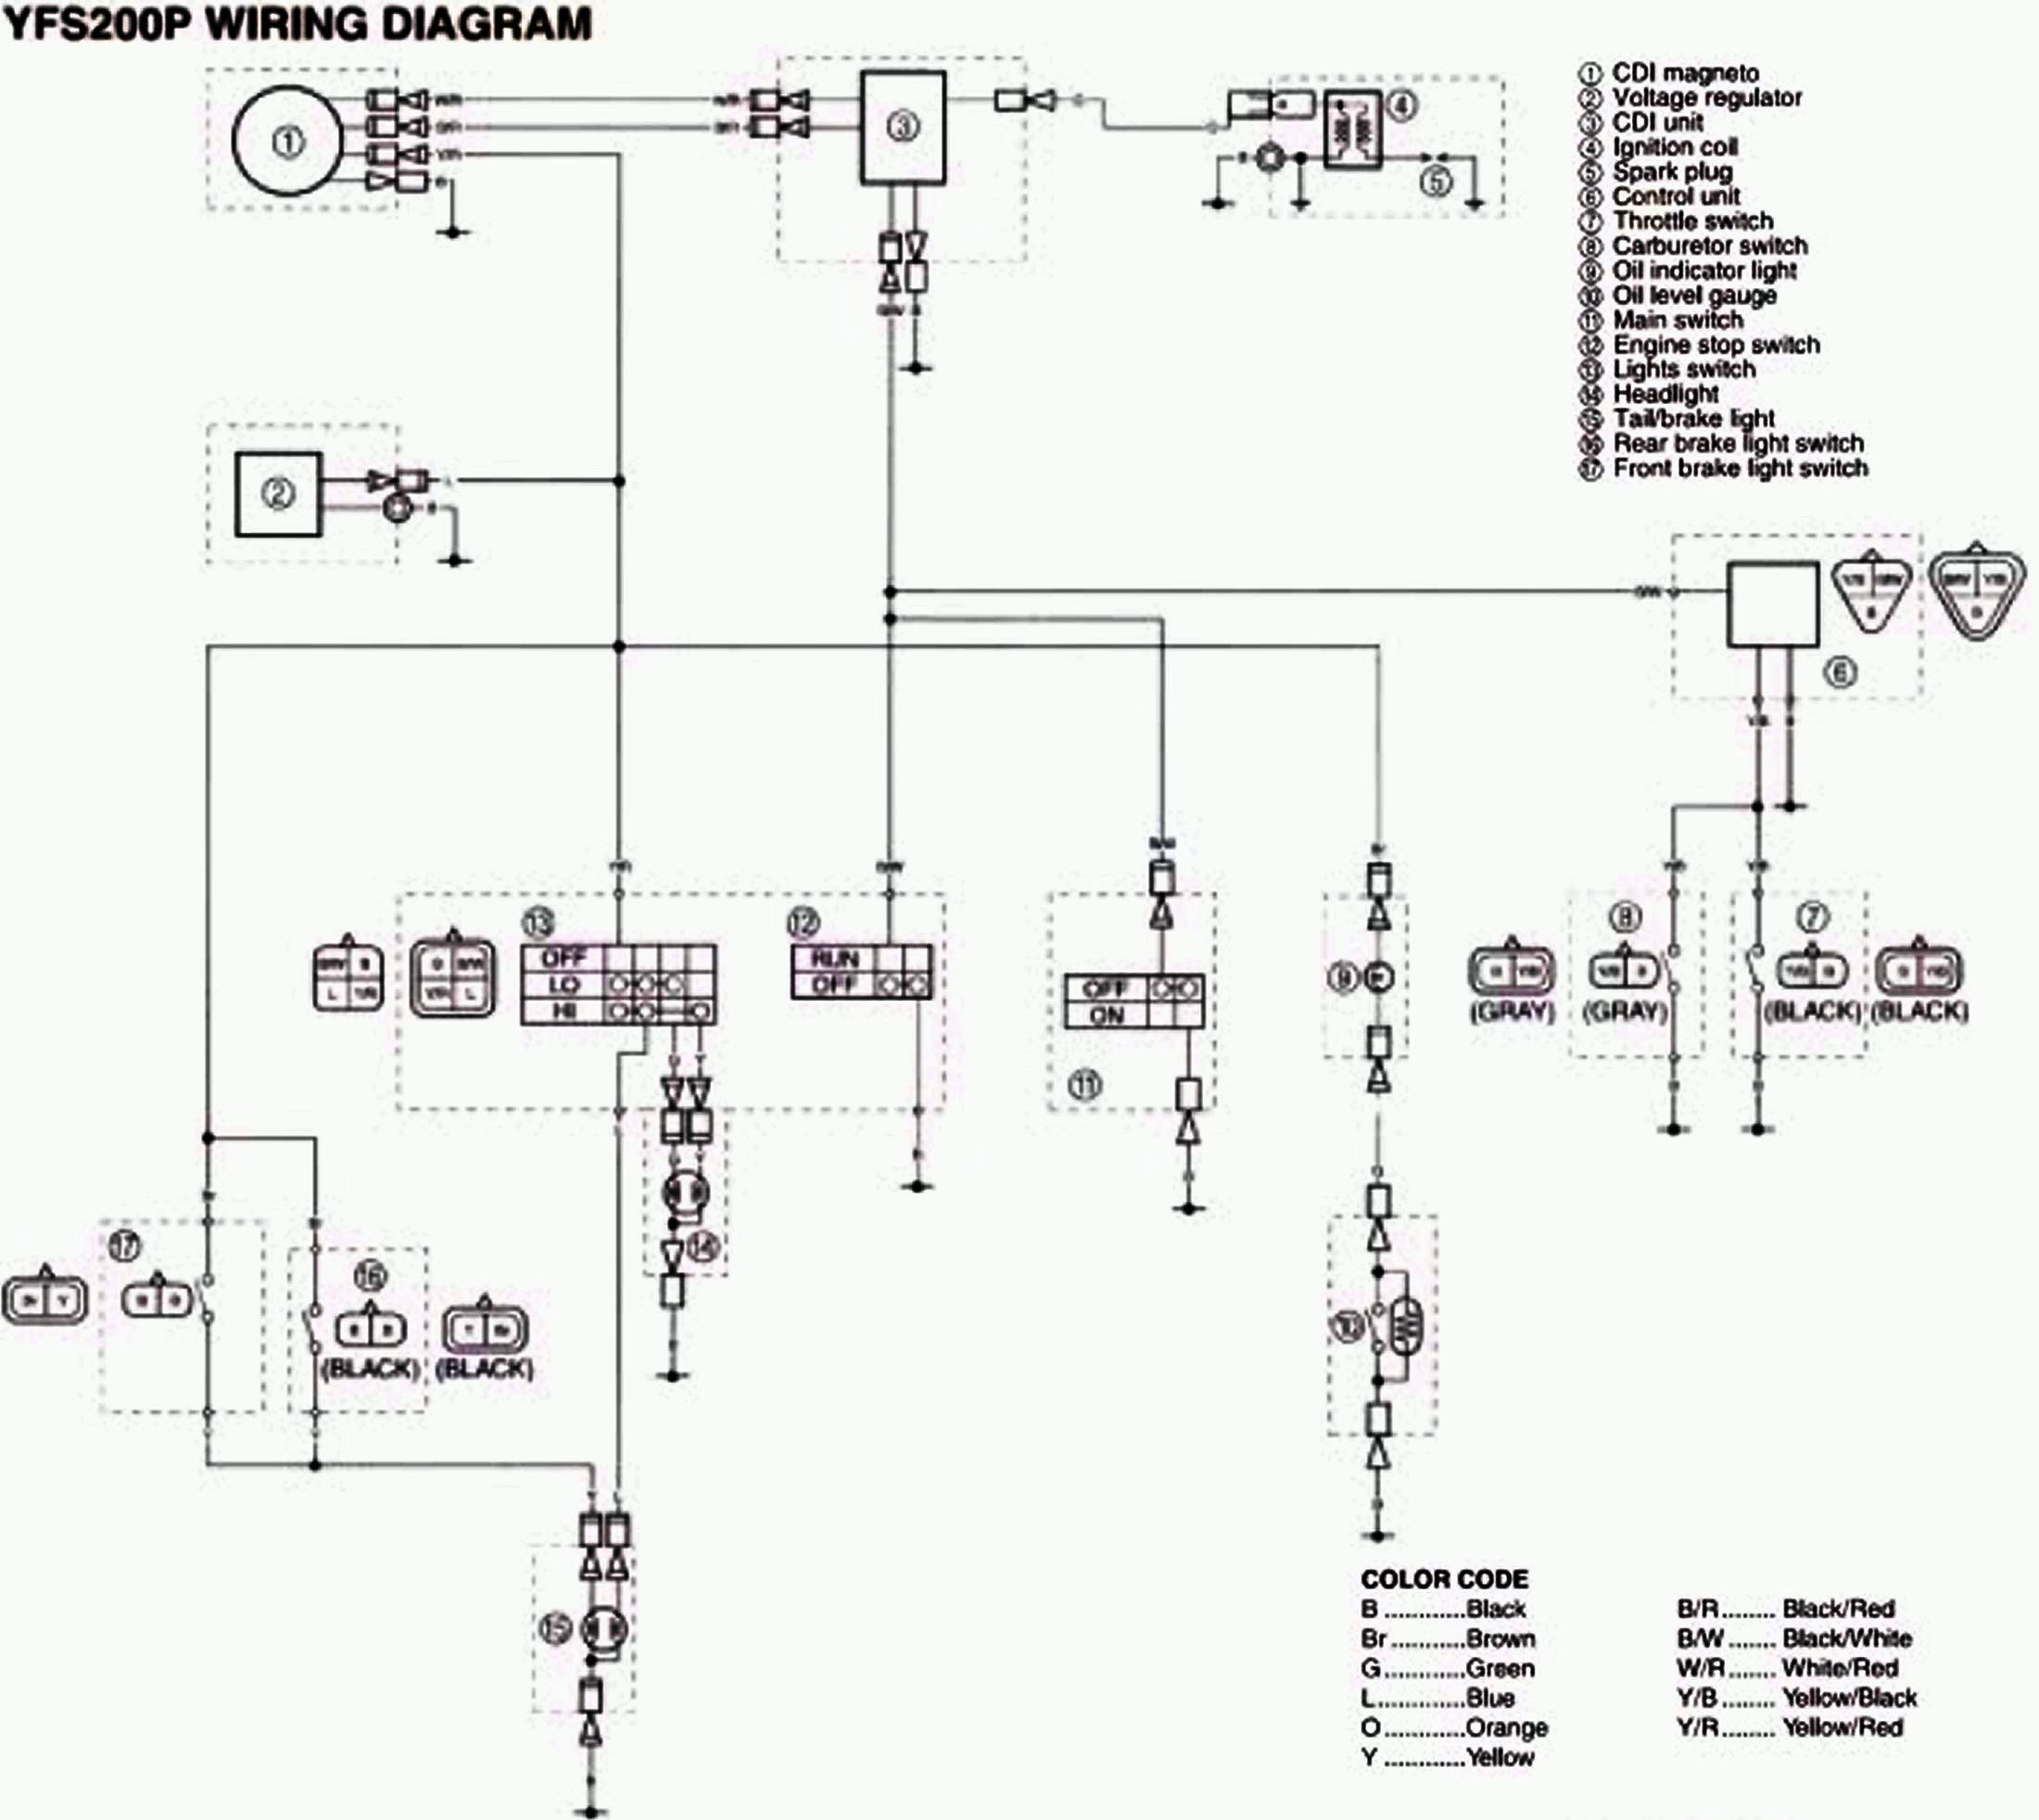 stock wiring diagrams blasterforum com yamaha blaster cdi yamaha blaster headlight wiring diagram